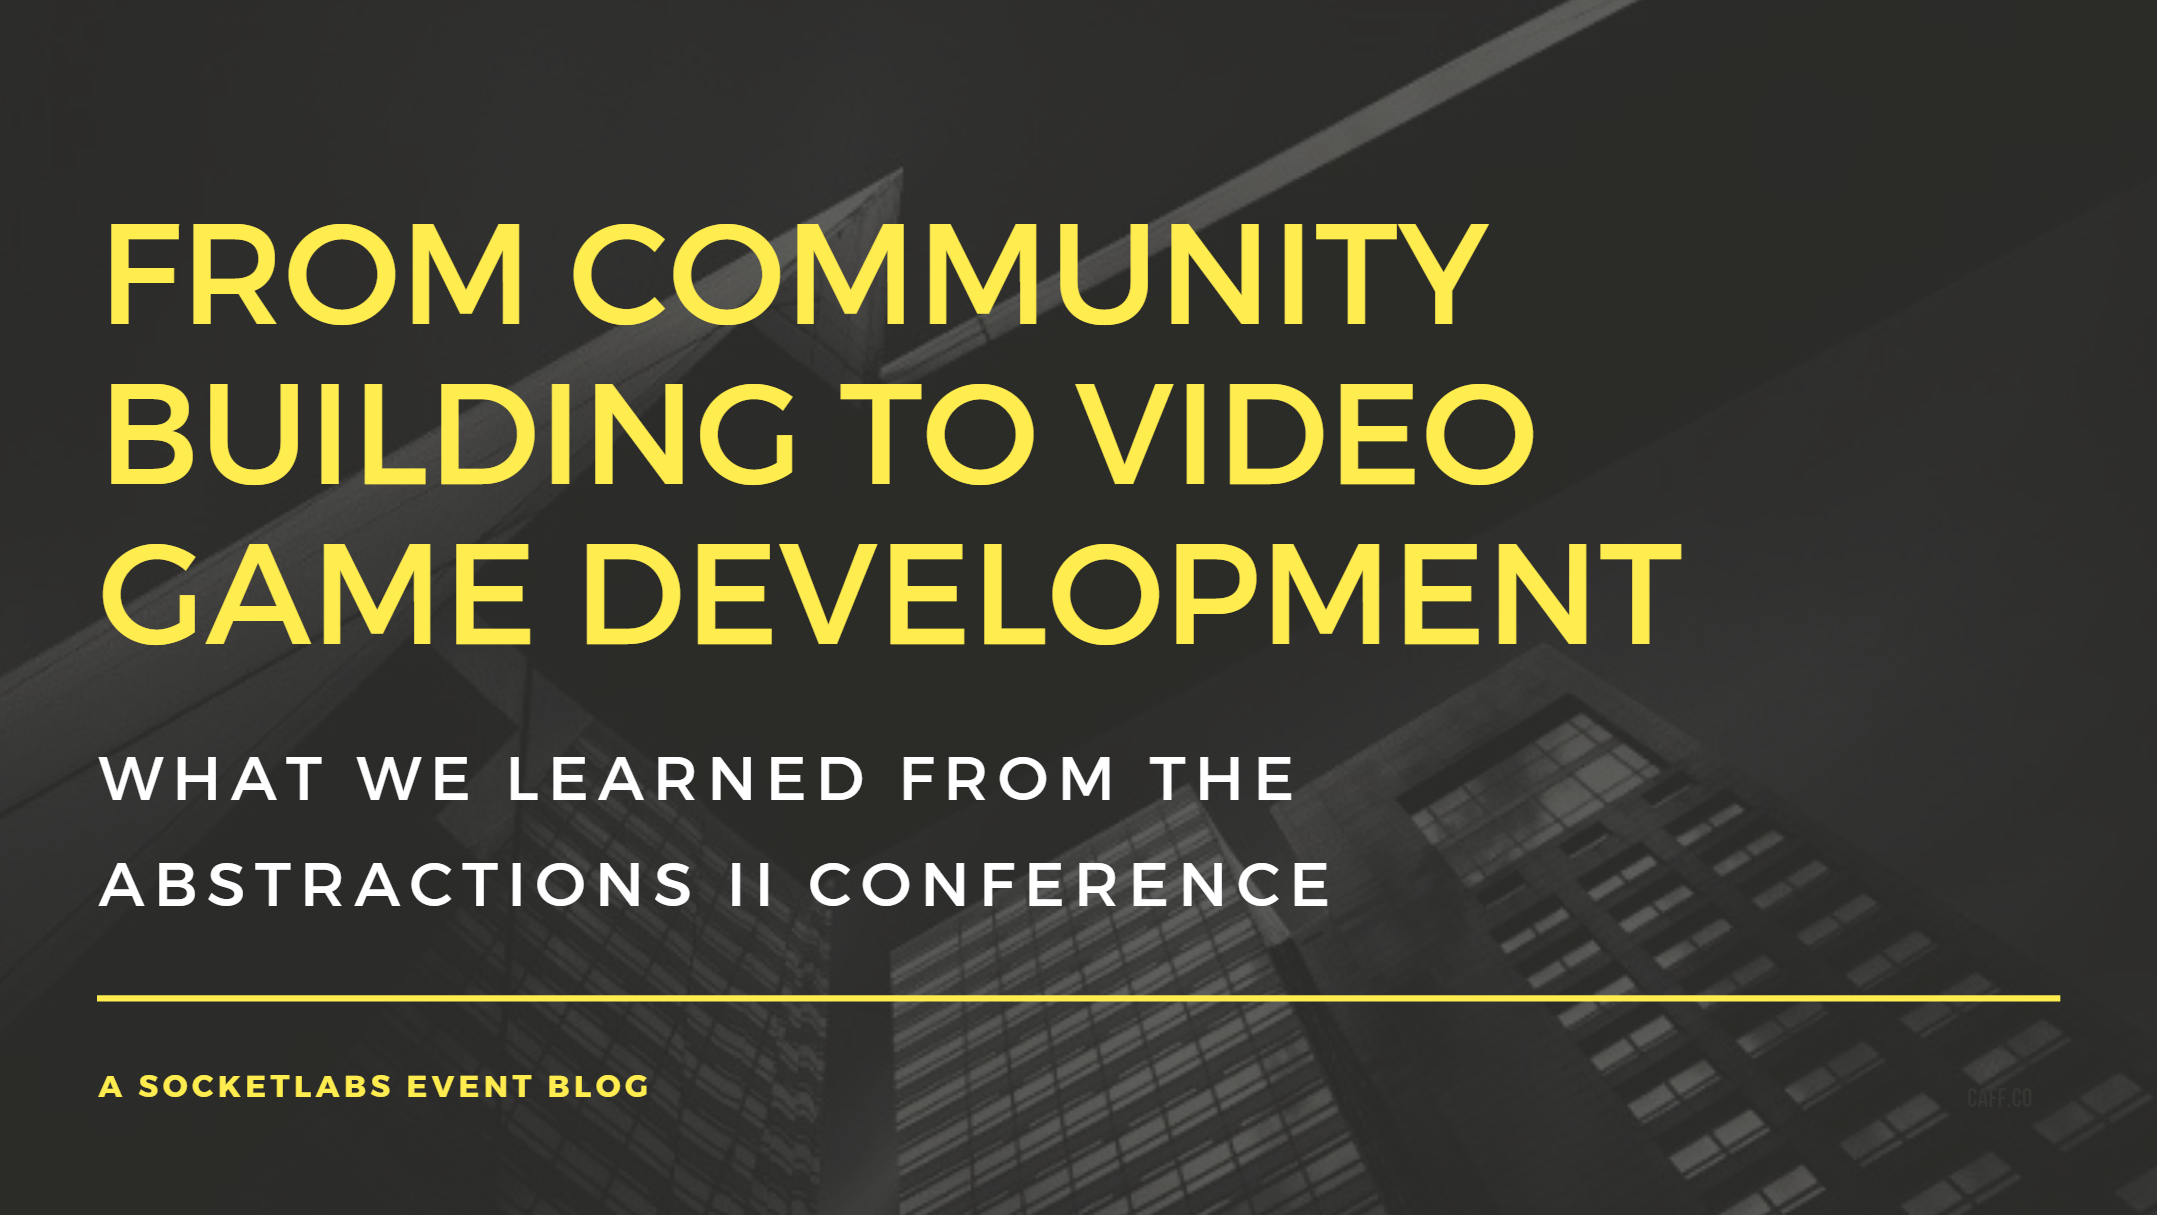 From Community Building to Video Game Development: What We Learned from the Abstractions II Conference